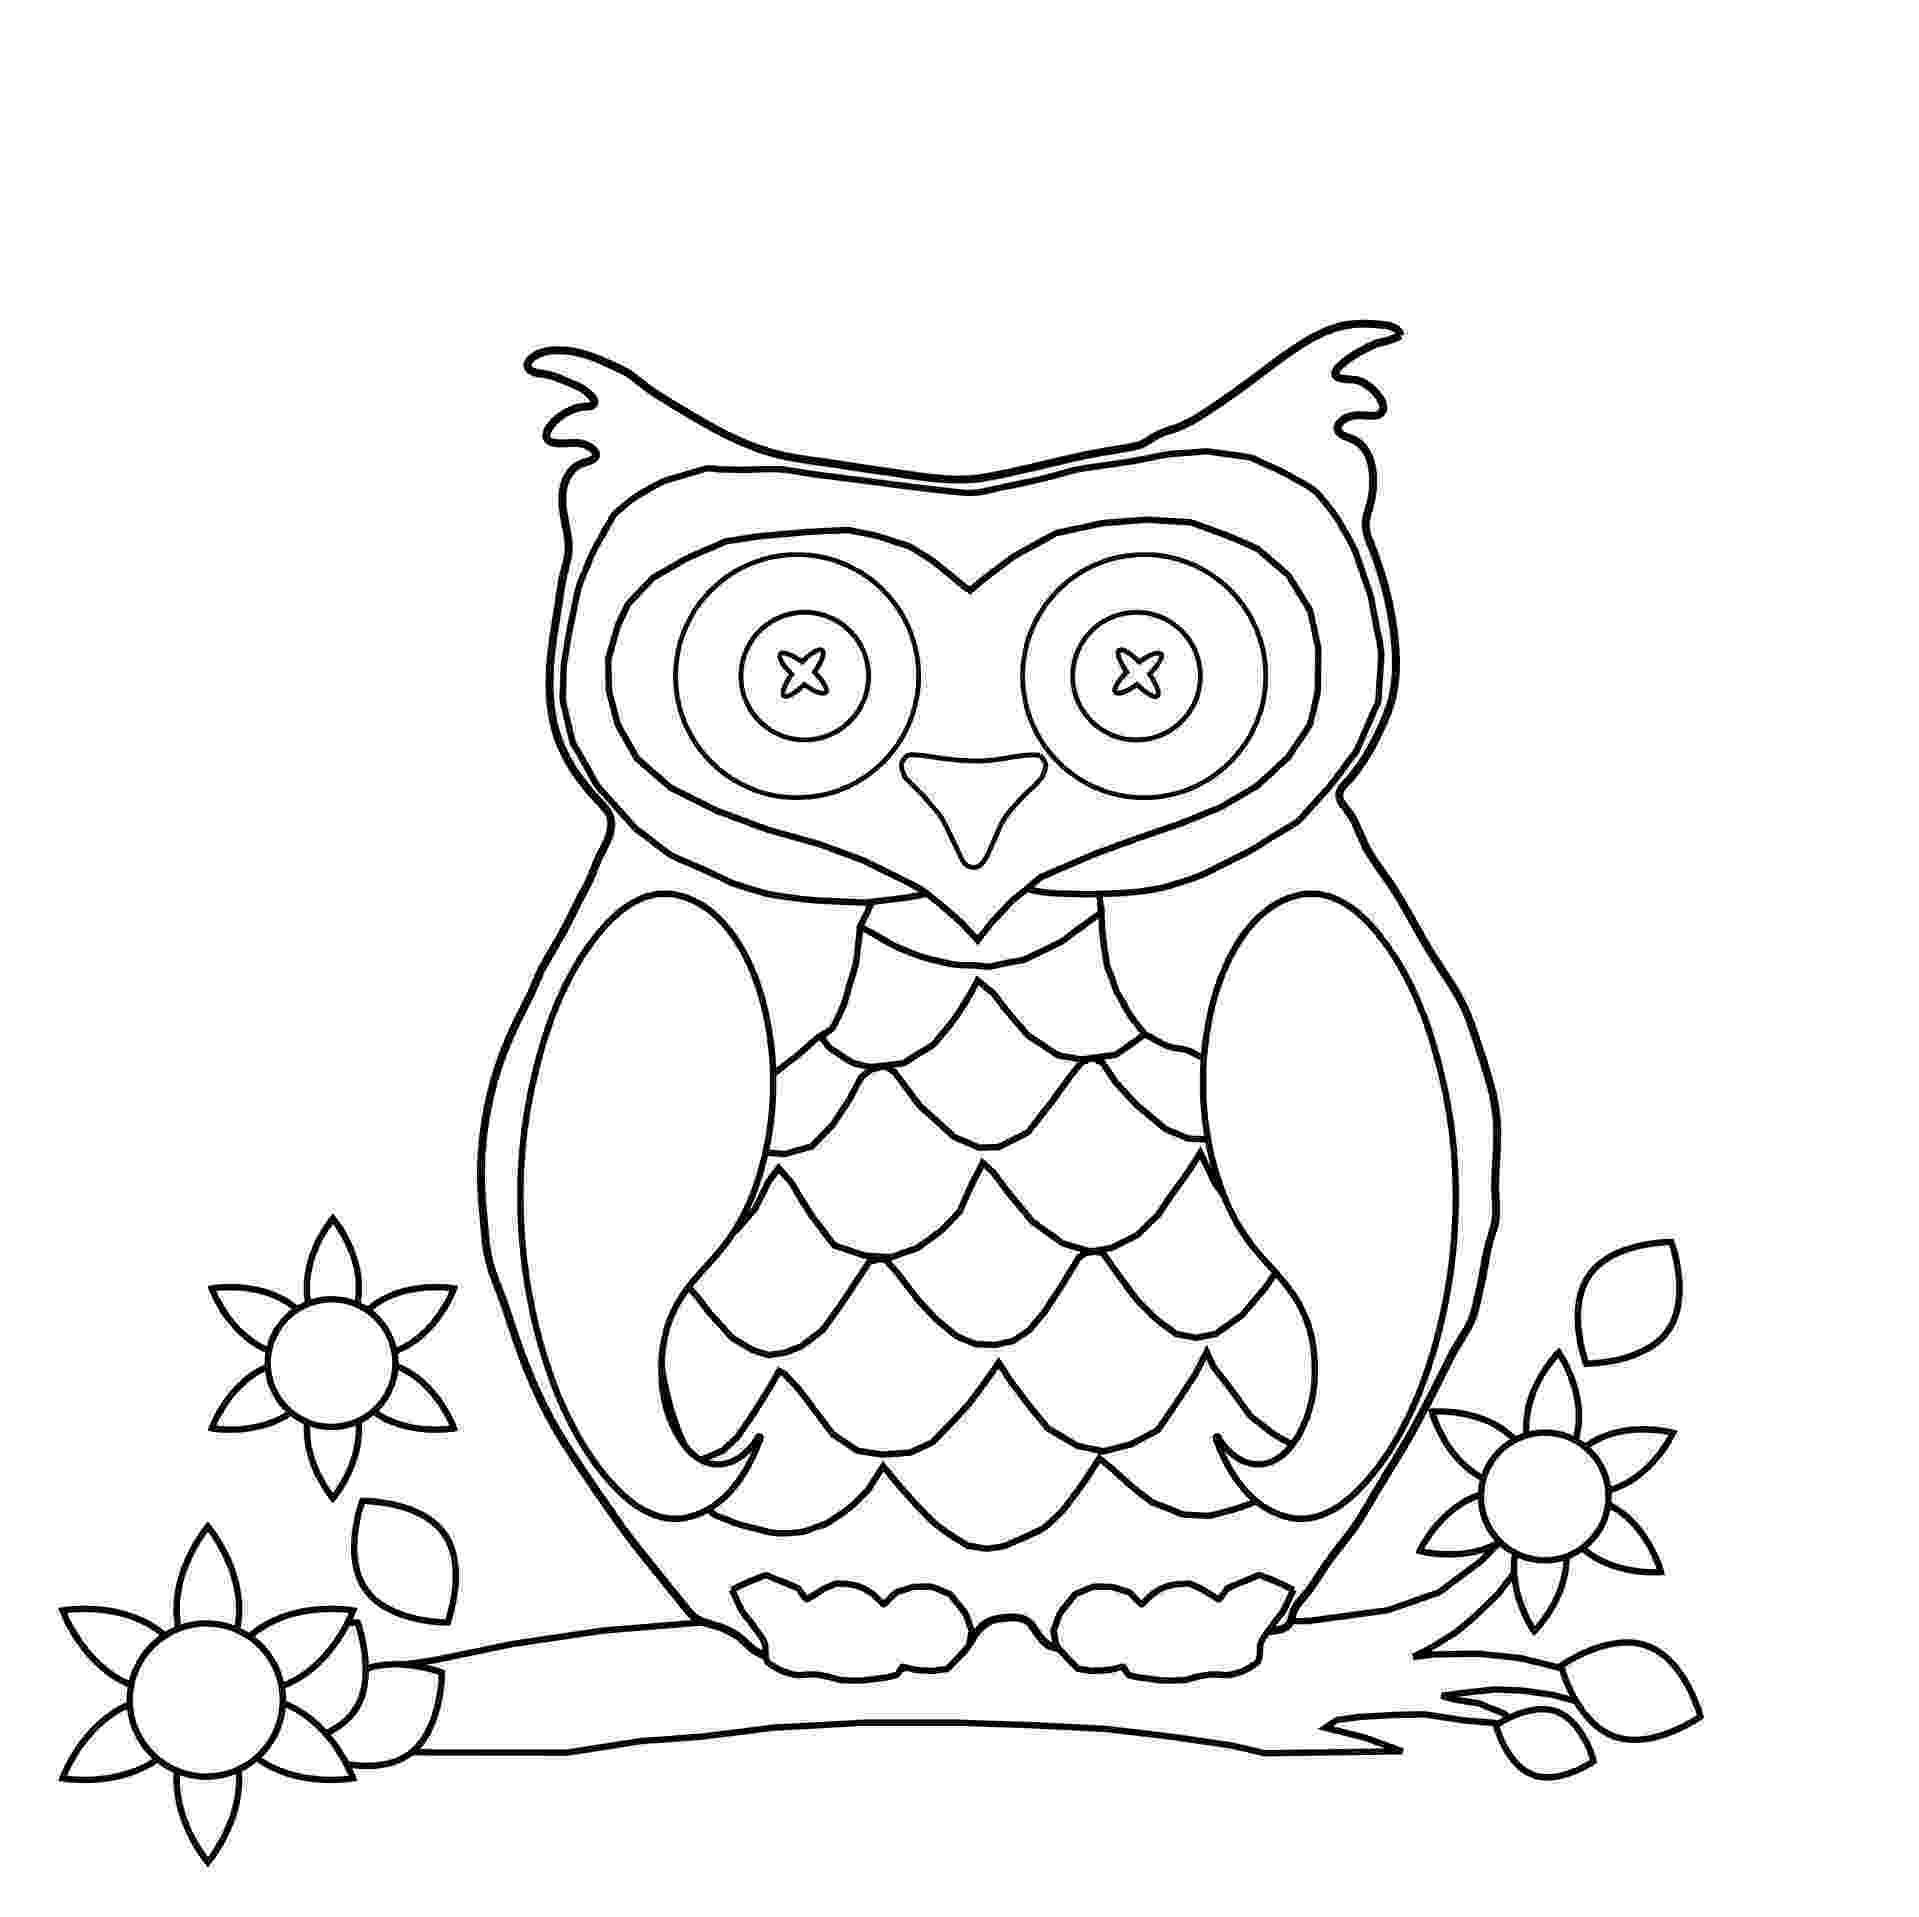 colouring pictures of owls cute owl coloring page free printable coloring pages colouring owls of pictures